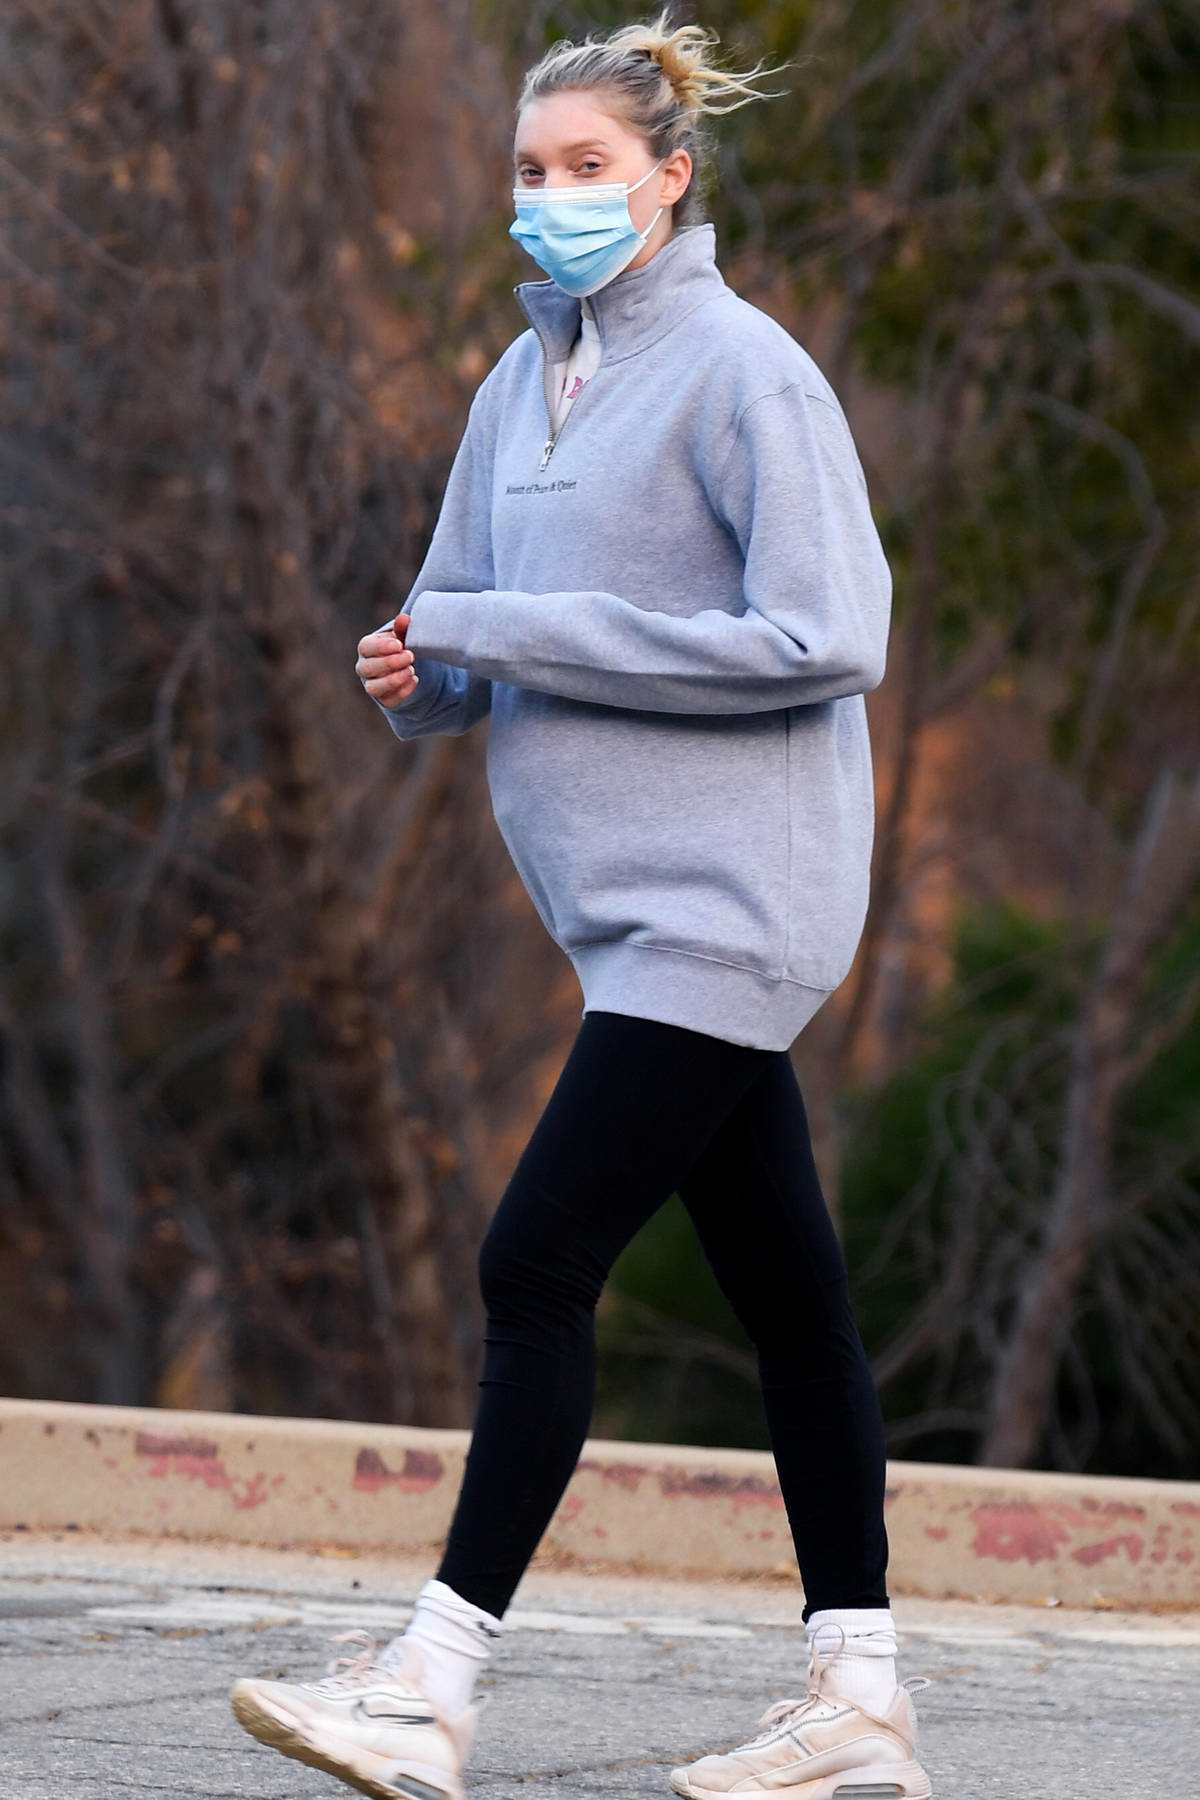 Elsa Hosk shows her growing baby bump while hiking with Tom Daly in Los Angeles